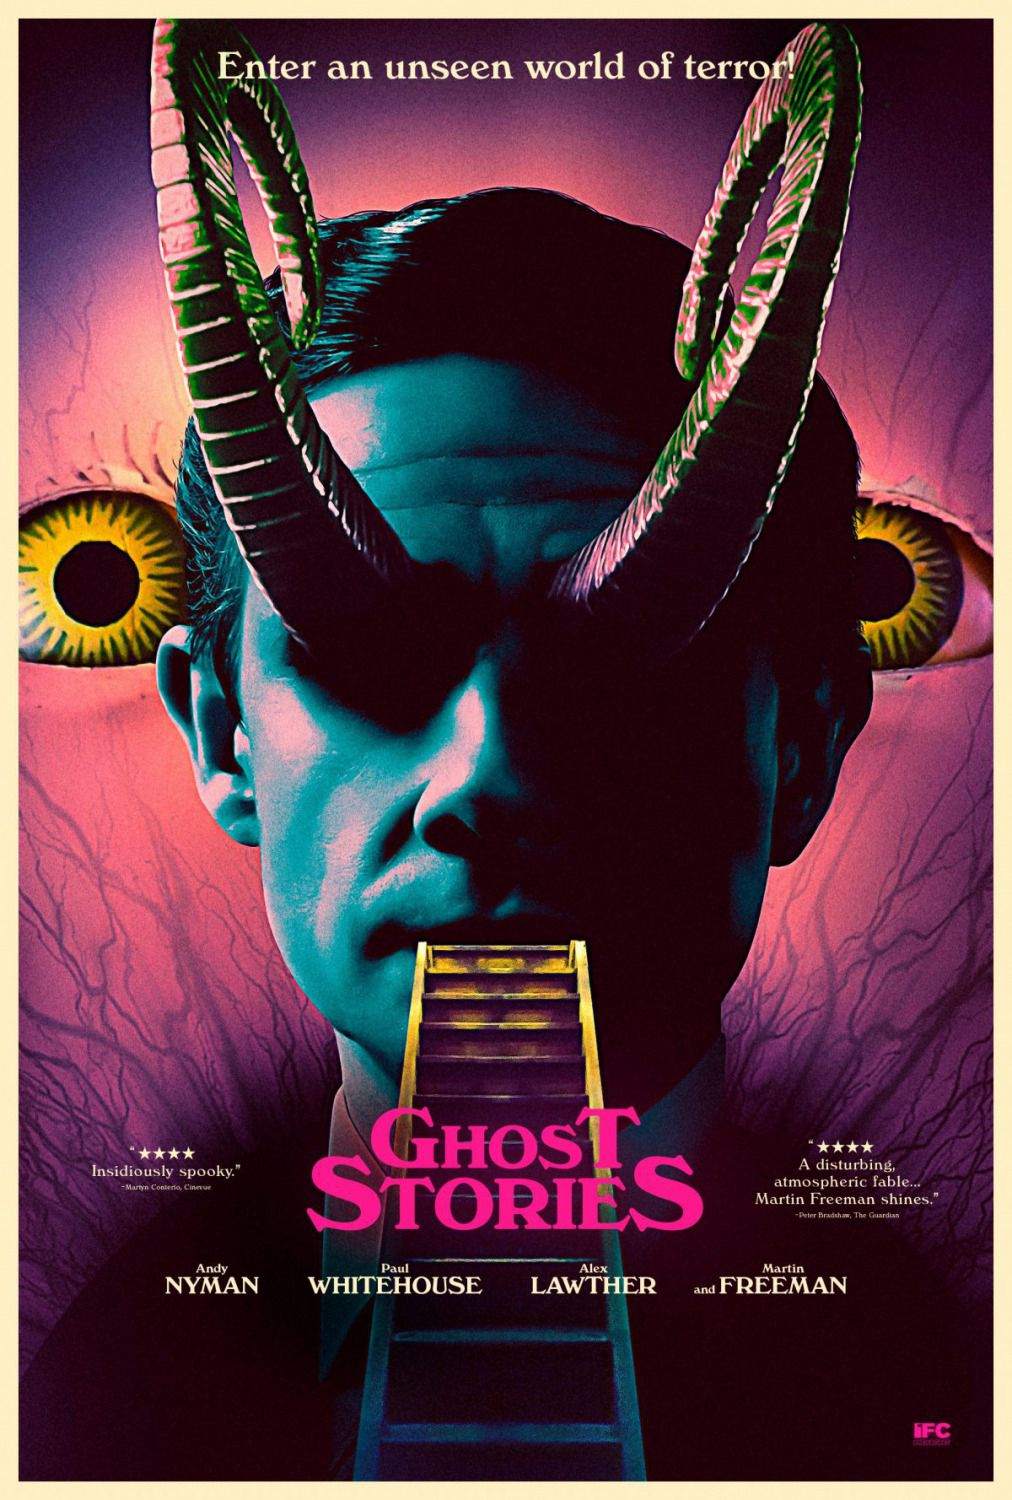 Ghost Stories - 2018 - Enter an unseen world of terror - horror film poster - horns - corna